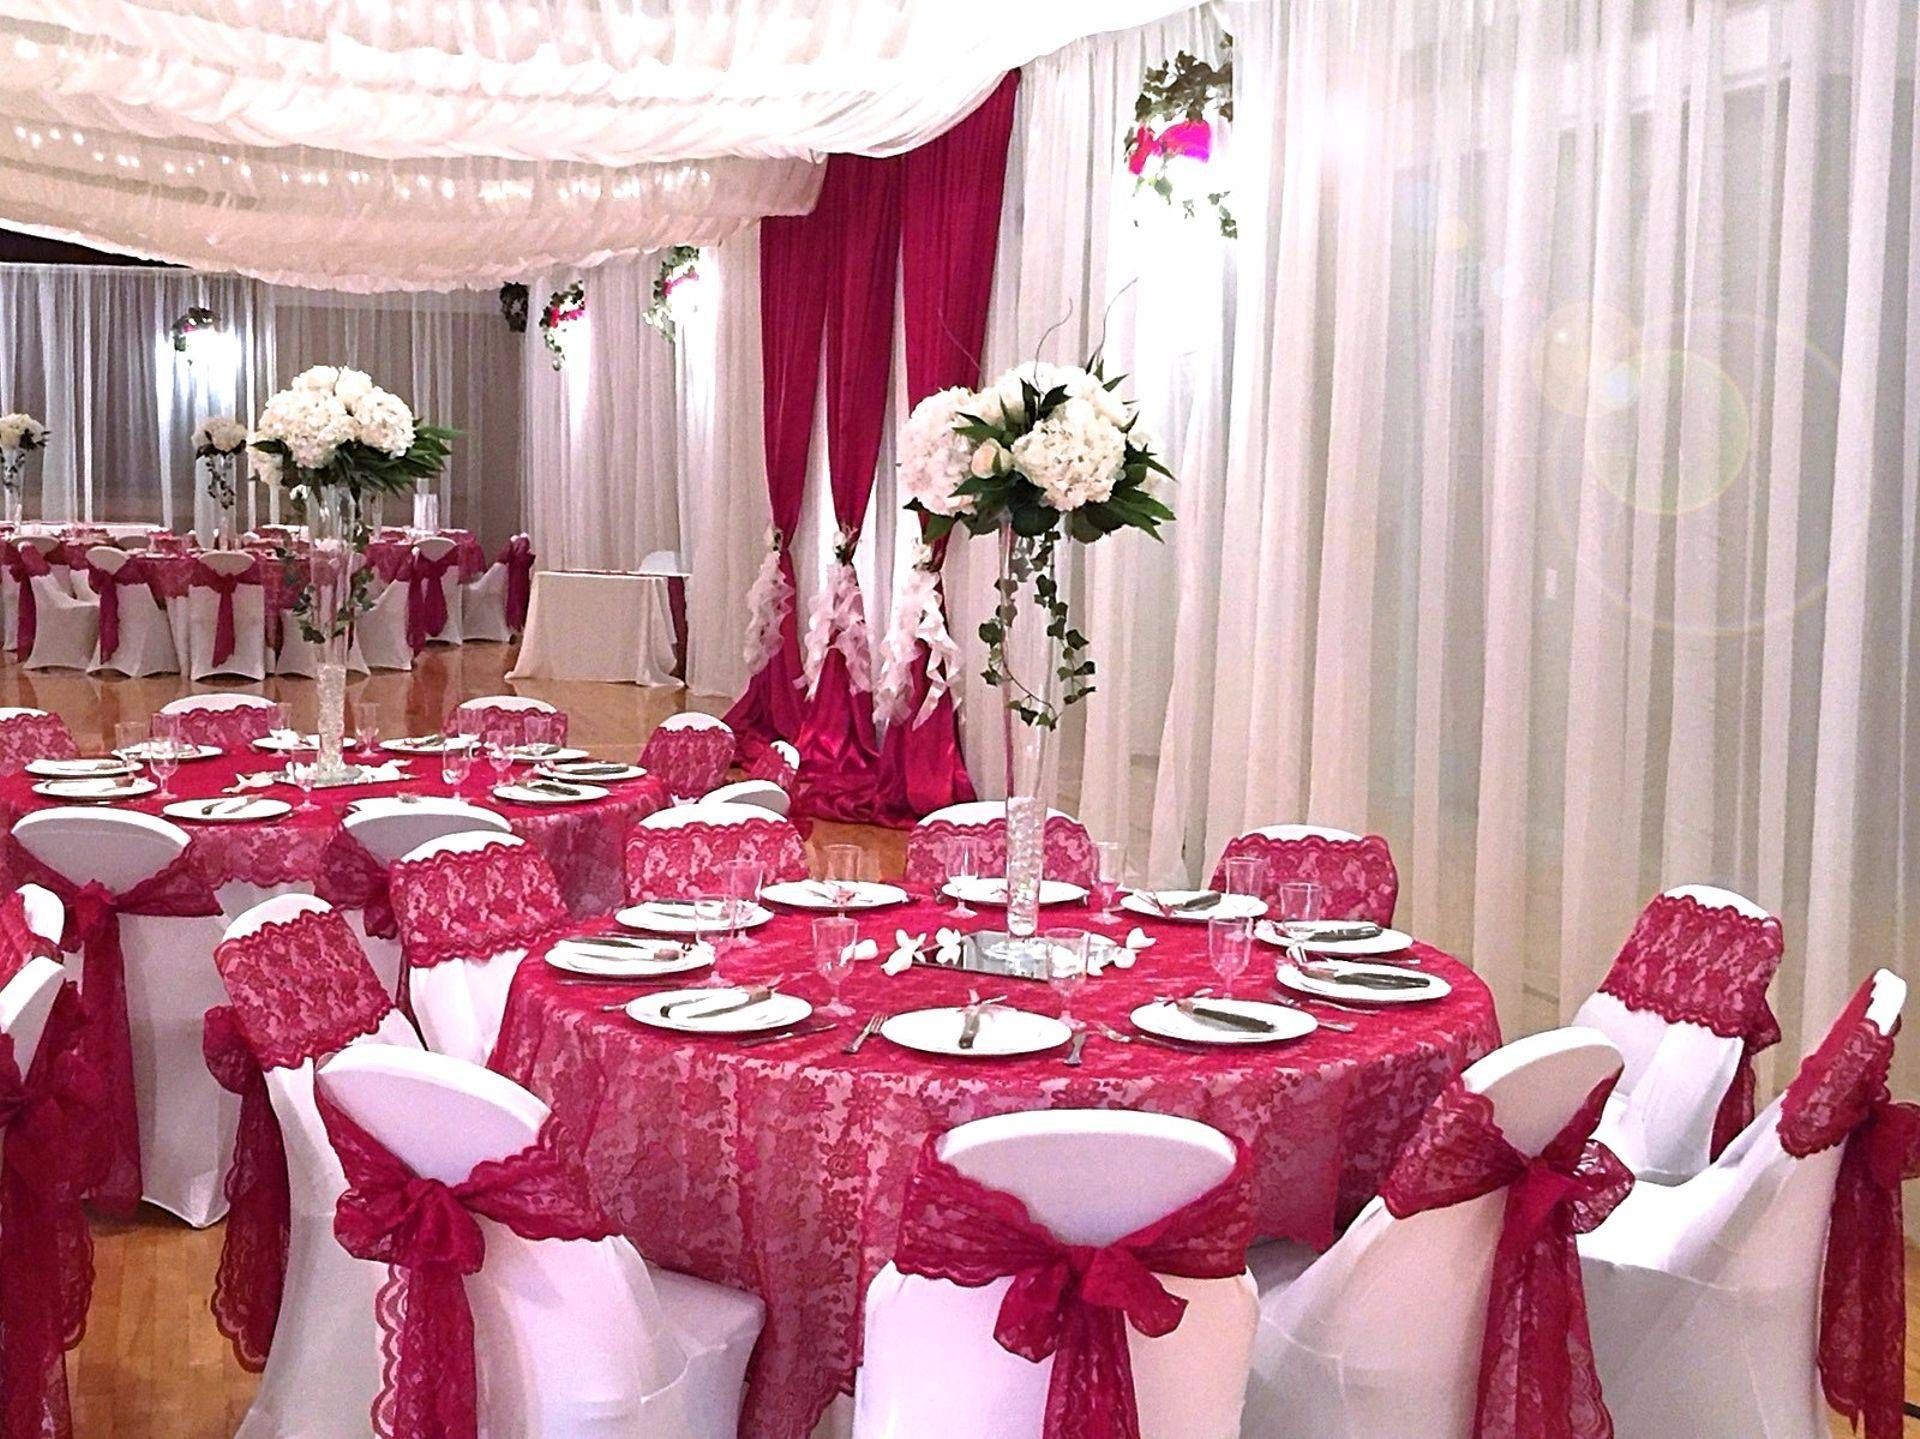 LDS Wedding Reception Decor for Cultural Halls in Arizona   Table ...